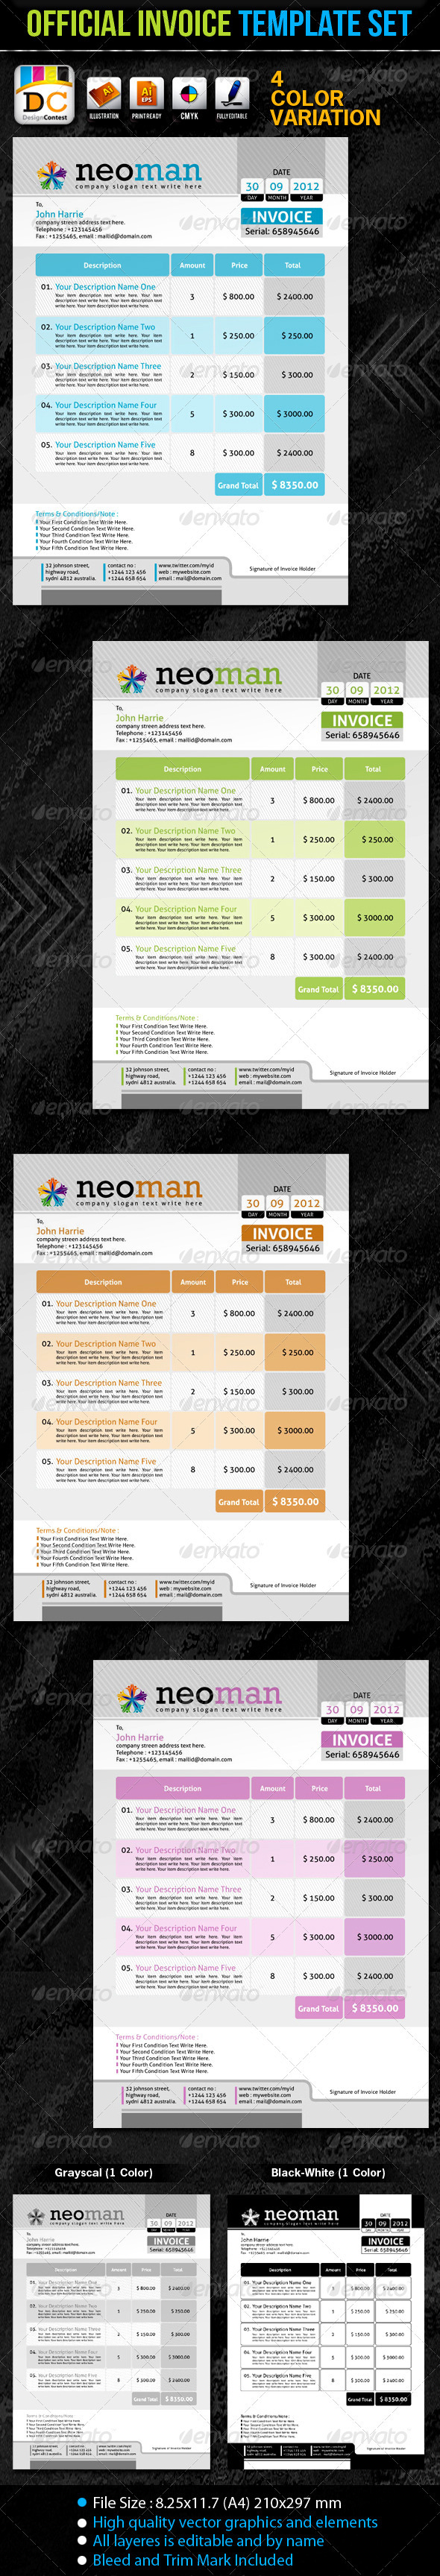 NeoMan_Official Invoice Template Set - Proposals & Invoices Stationery